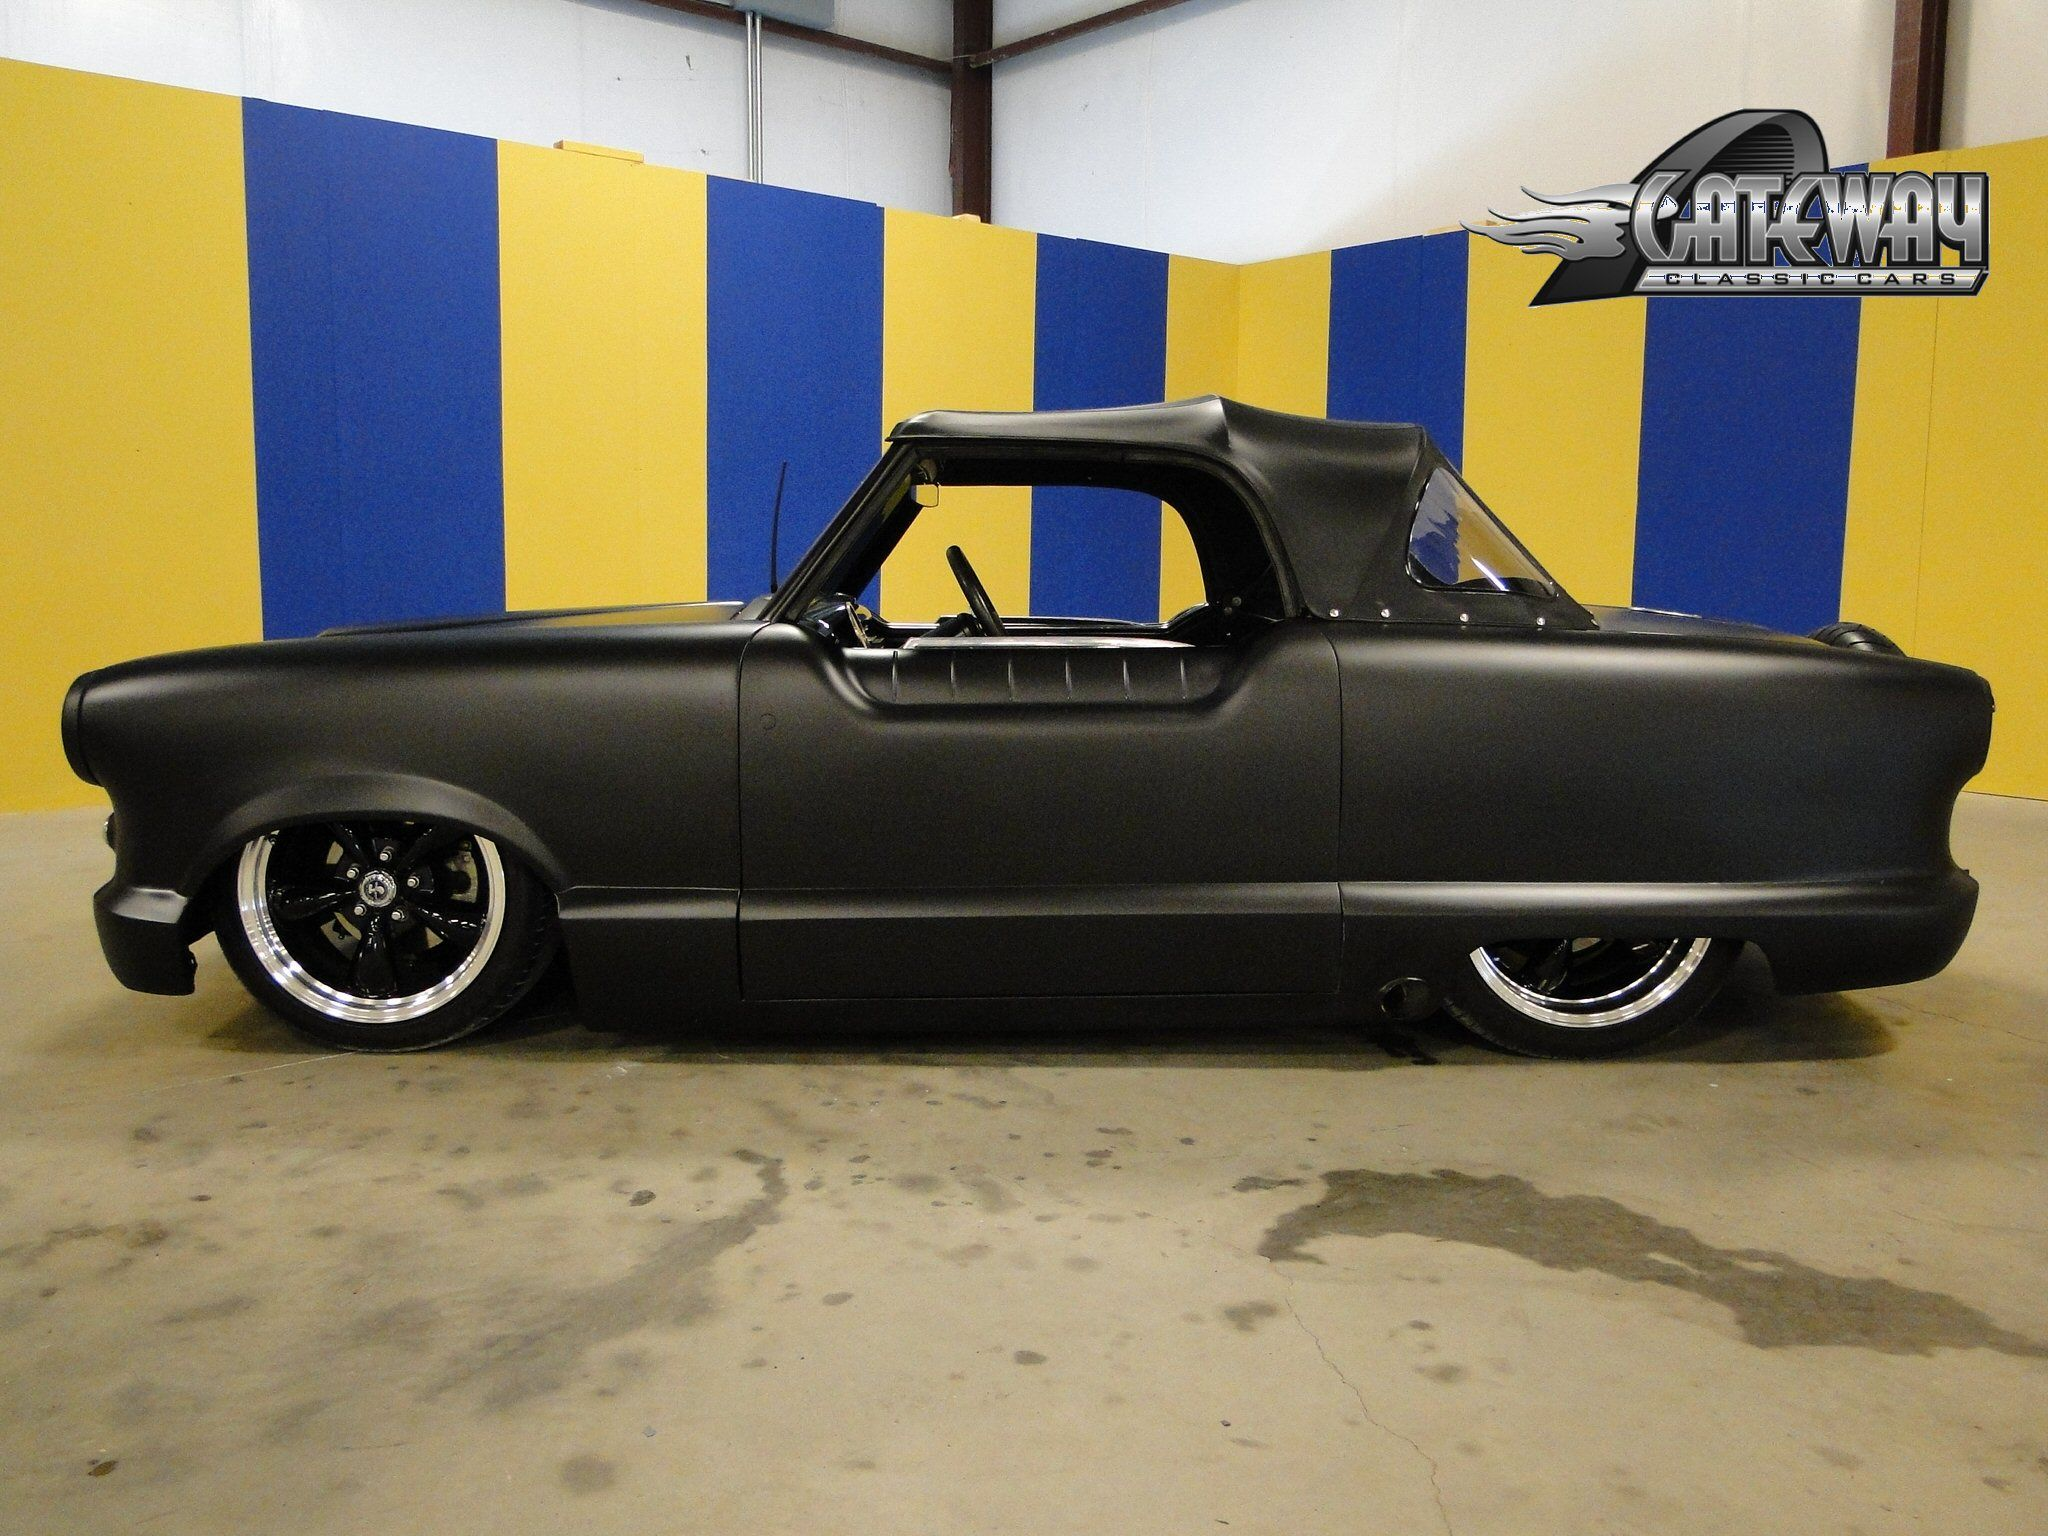 Nash Metropolitan with a EFI bette motor... crazy